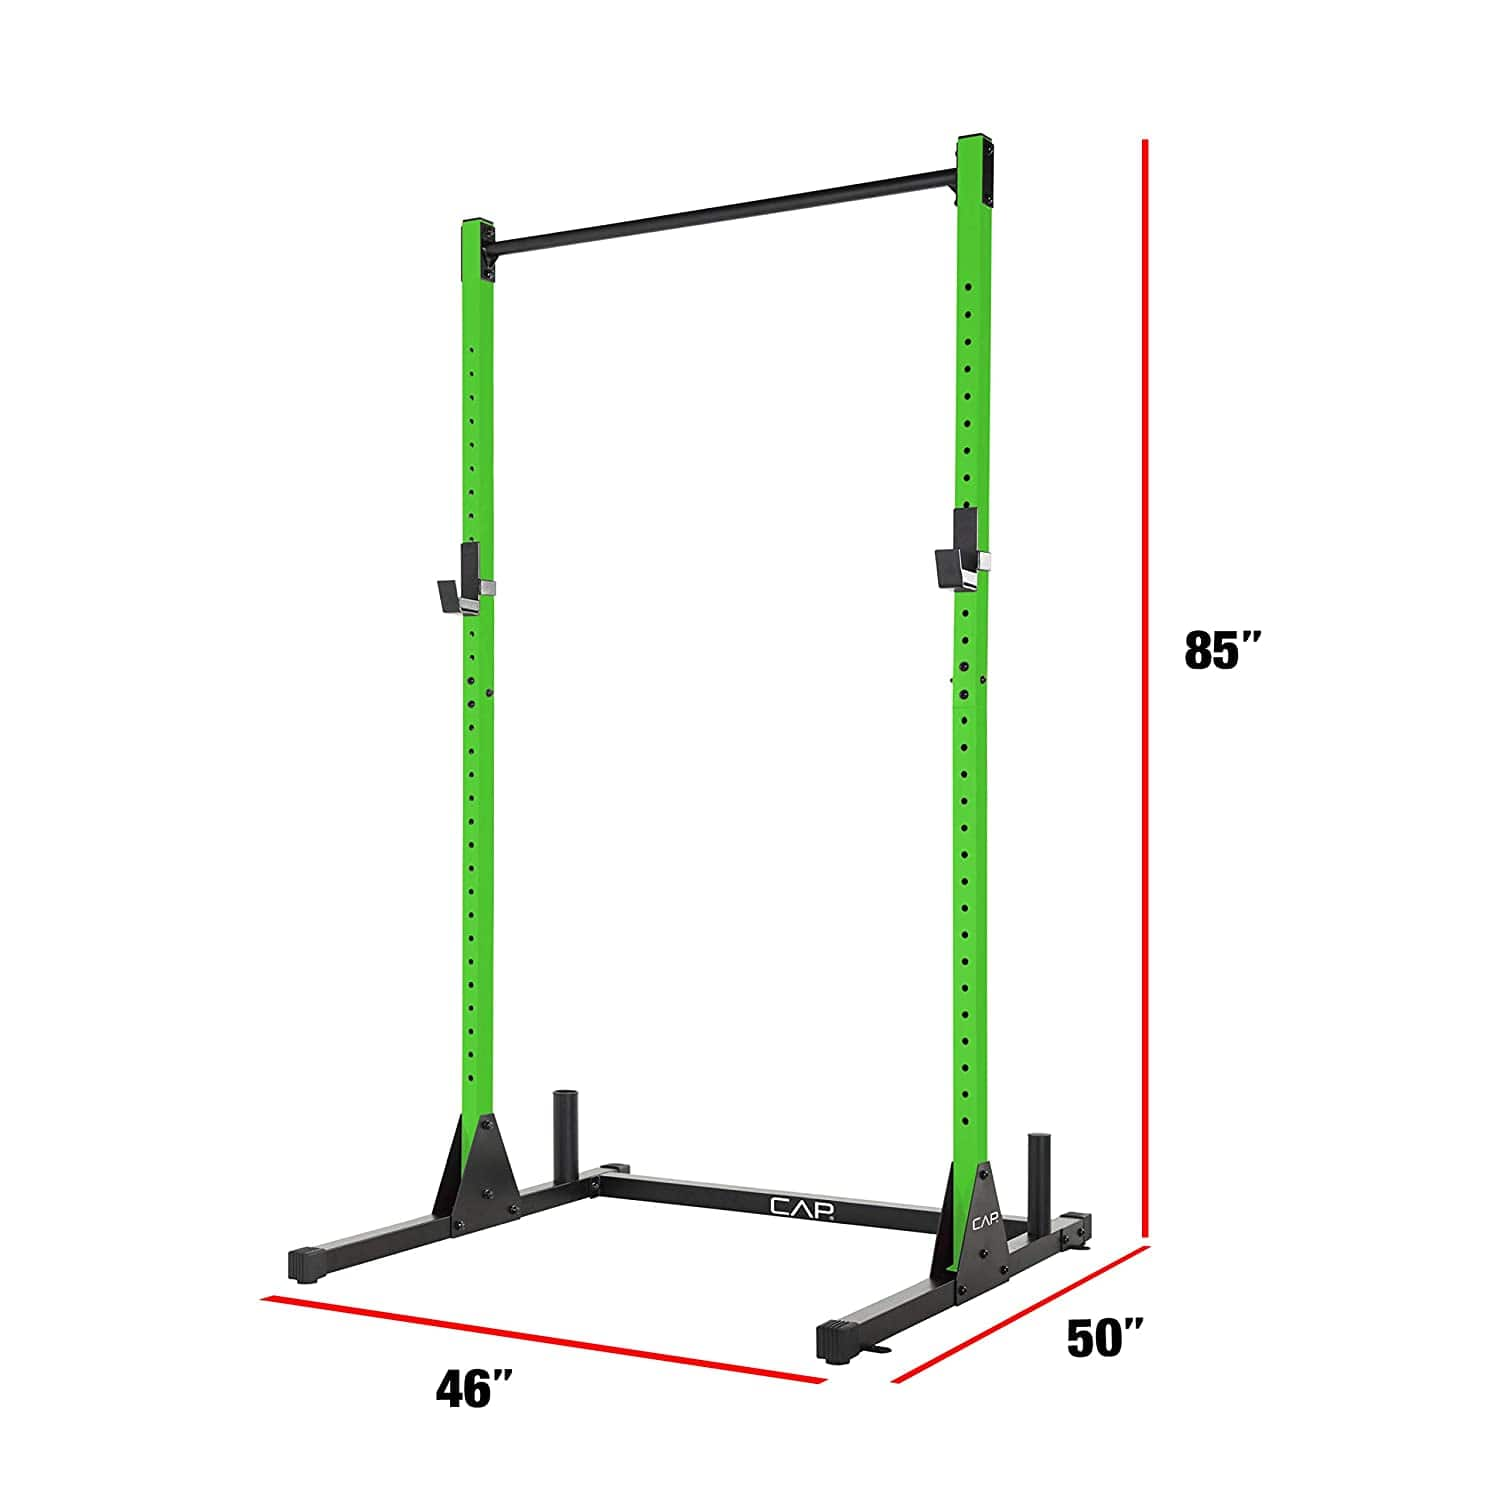 CAP Barbell Power Rack Exercise Stand / SQUAT rack - ships in 3 to 5 days $119.99